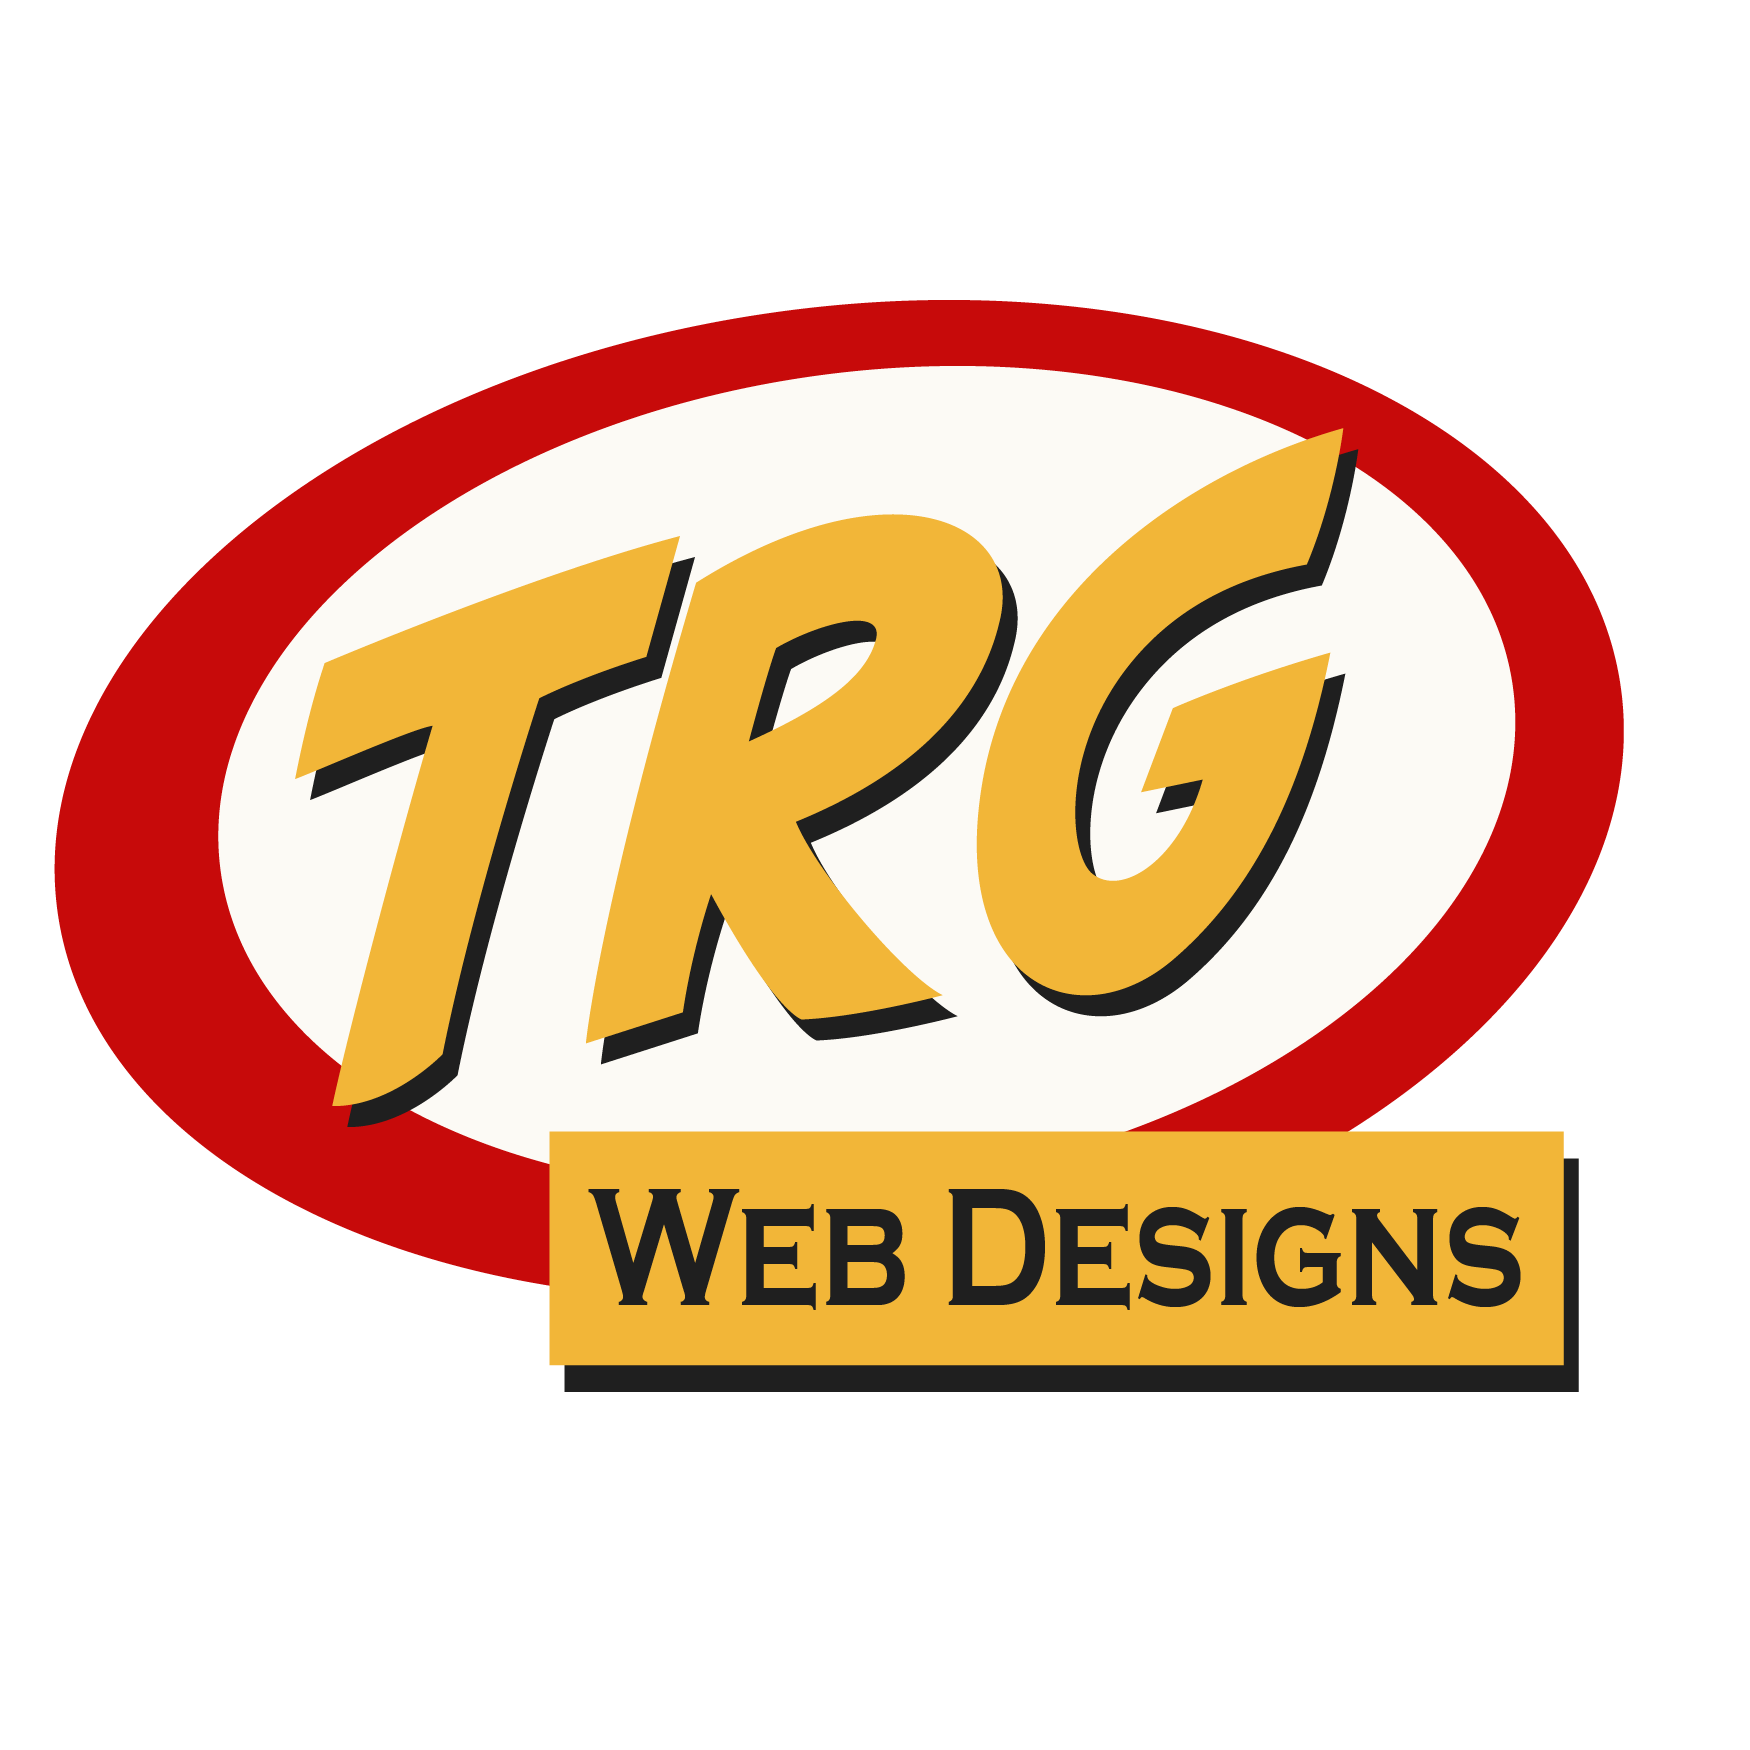 Design Bureau Llc Trg Web Designs Llc Better Business Bureau Profile